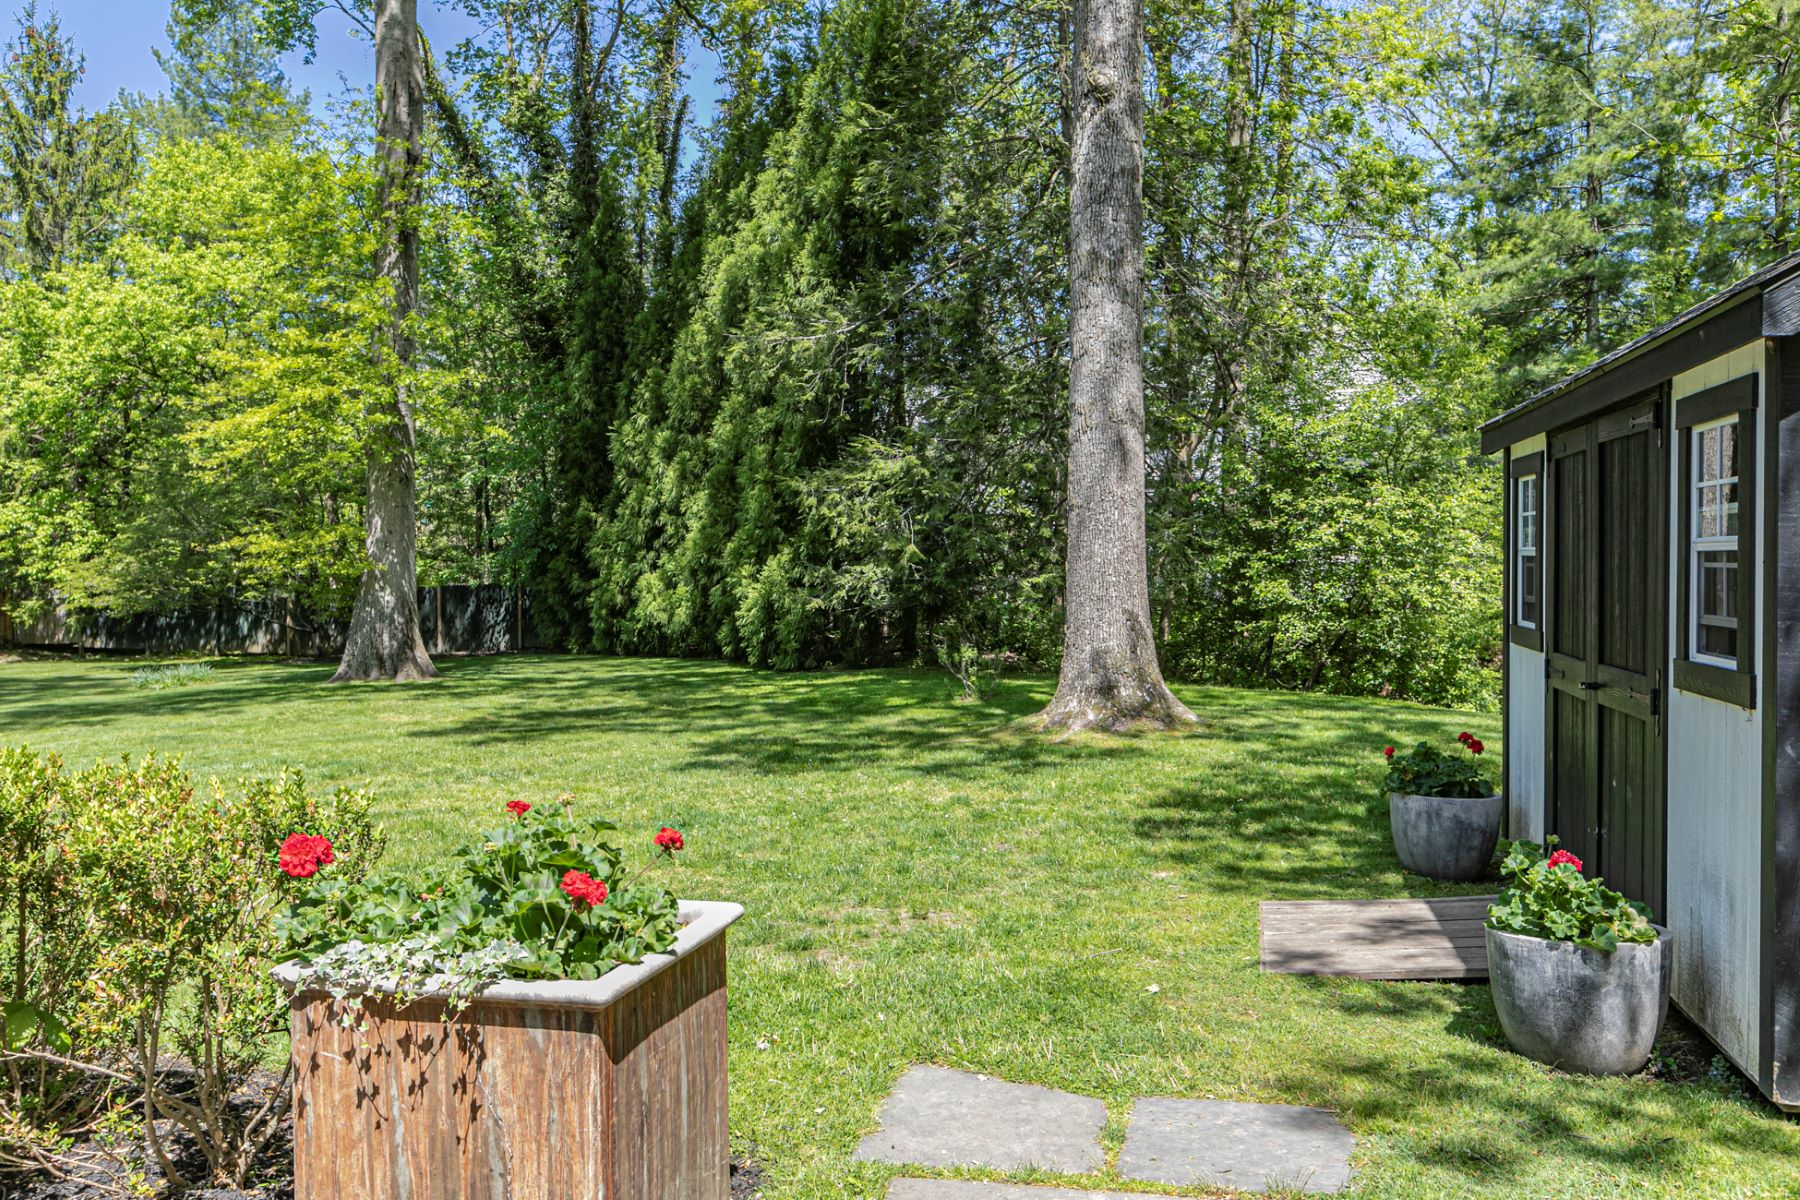 Additional photo for property listing at Classic Yet Modern Colonial Only 1.2 Miles to Town! 127 Westerly Road, Princeton, Νιου Τζερσεϋ 08540 Ηνωμένες Πολιτείες